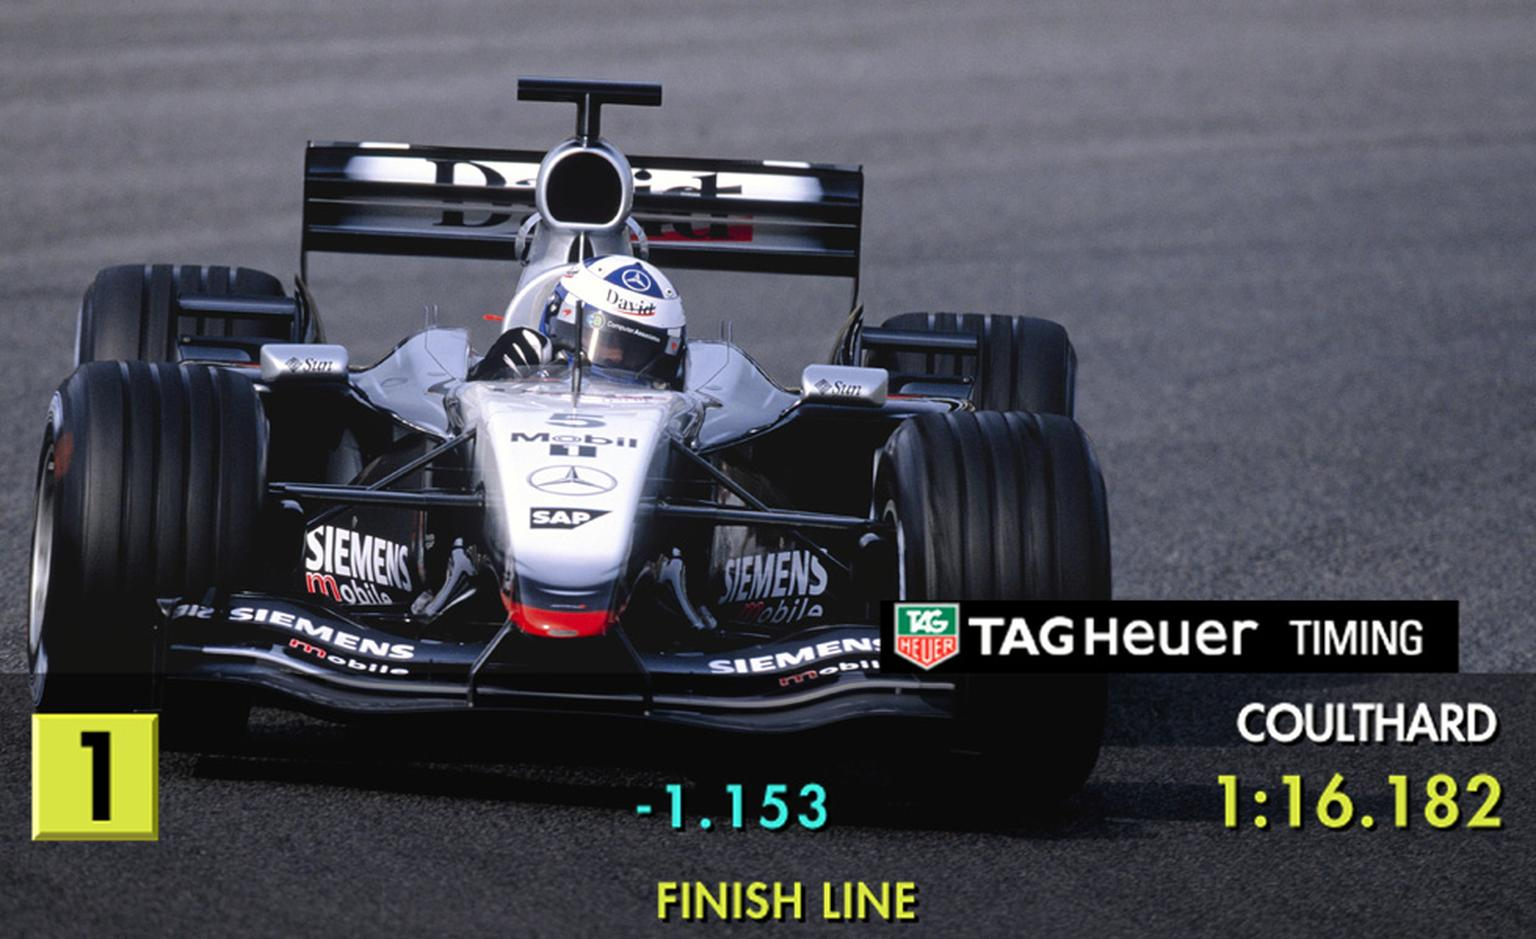 TAG Heuer timing in action at Formula 1 races